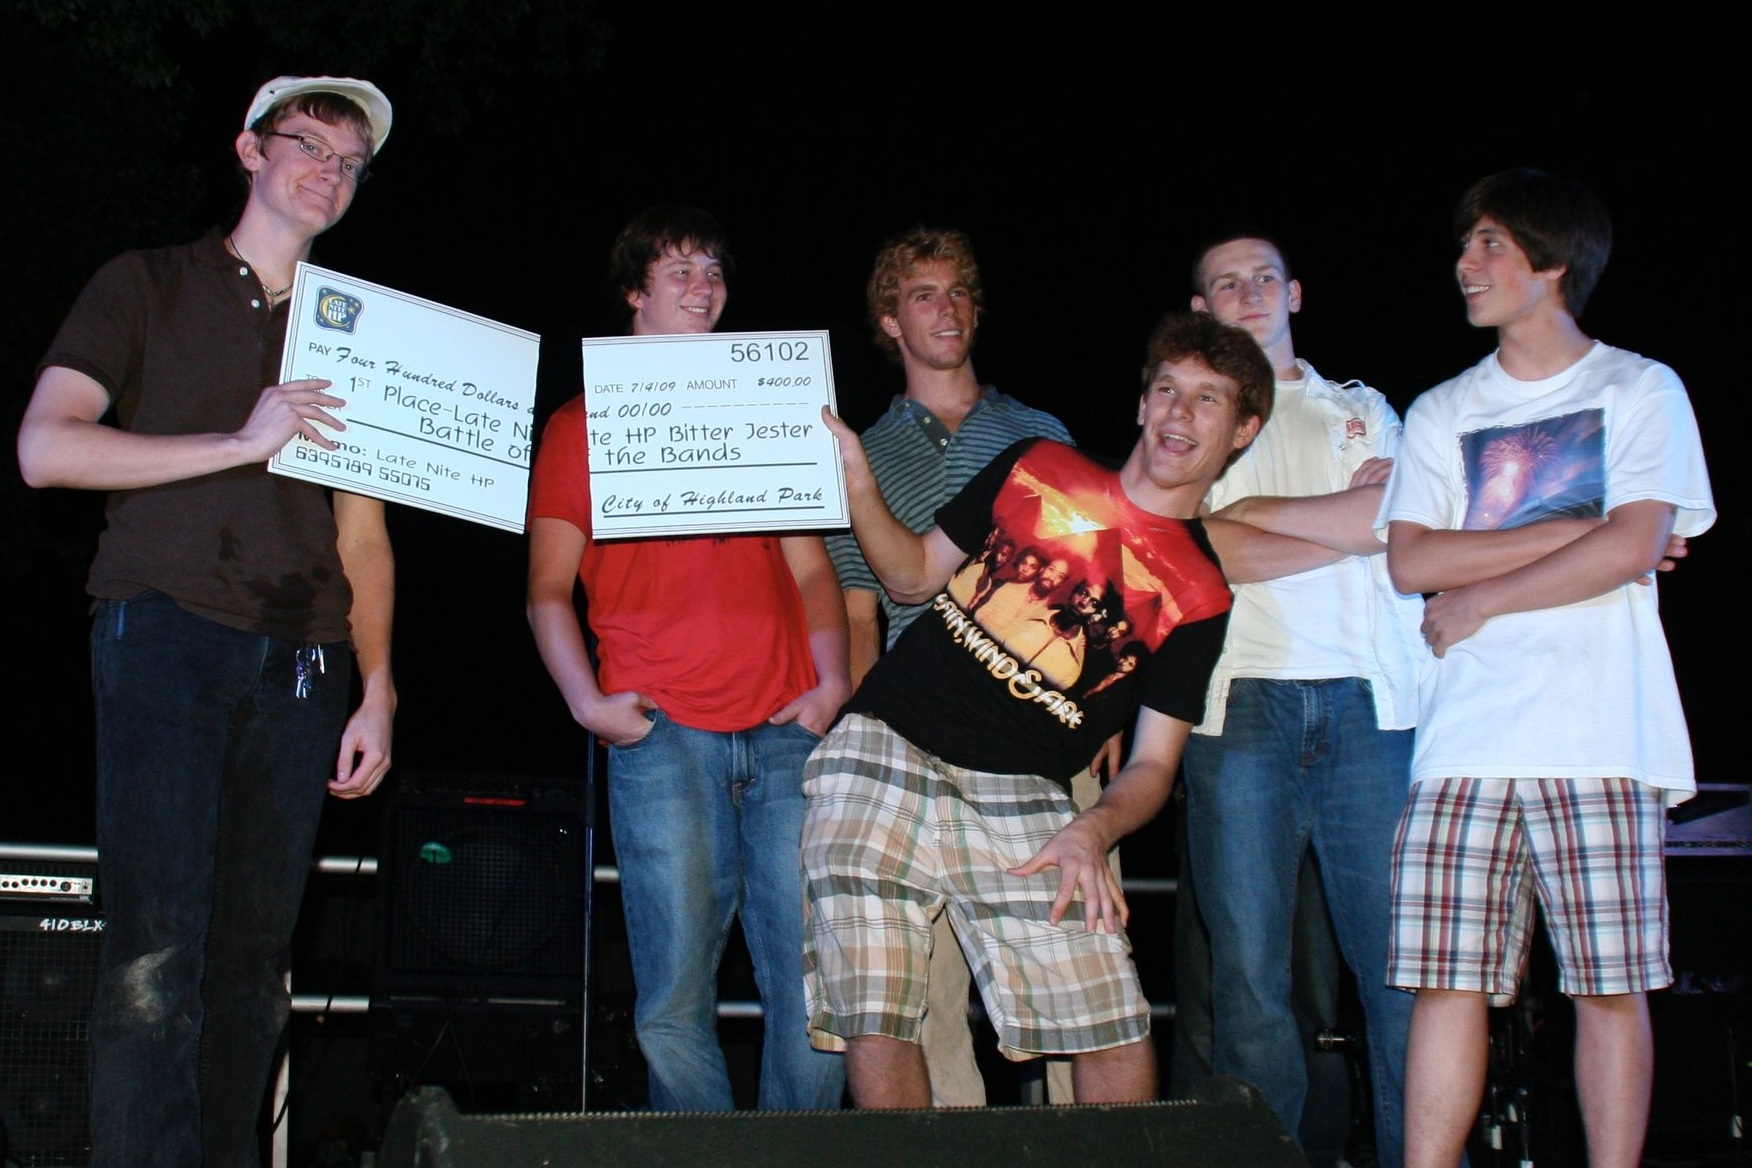 2009 Grand Champions (tied): The Burrows 4 and Maq (photo: Ken Thompson)